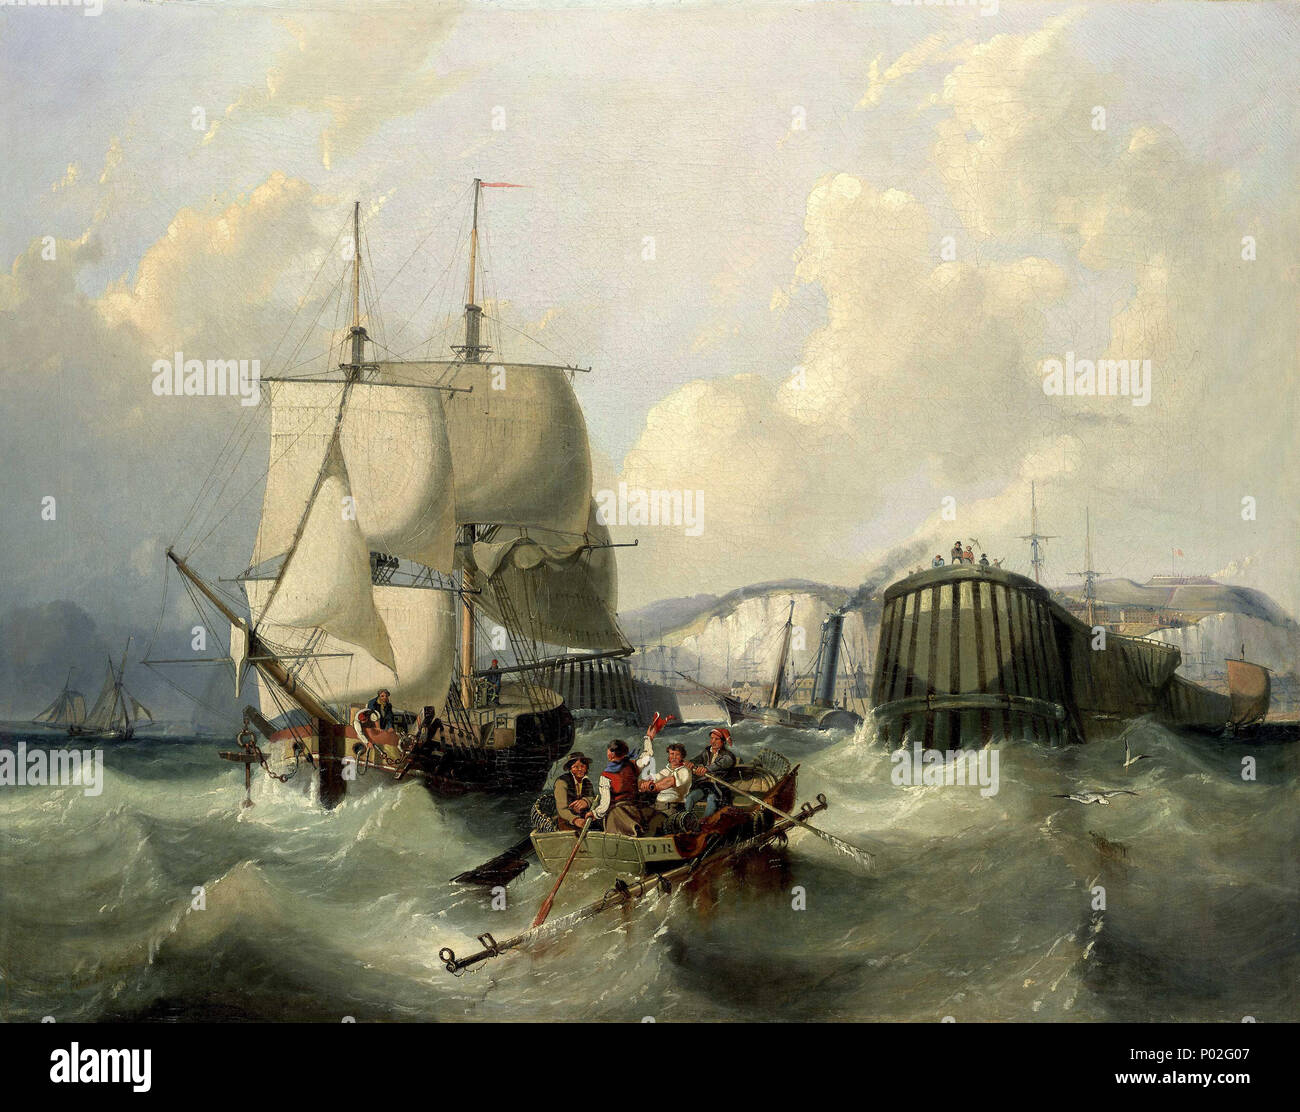 English a brig leaving dover this painting shows a view of dover english a brig leaving dover this painting shows a view of dover from the sea with a brig sailing out towards the viewer a fishing boat is making its m4hsunfo